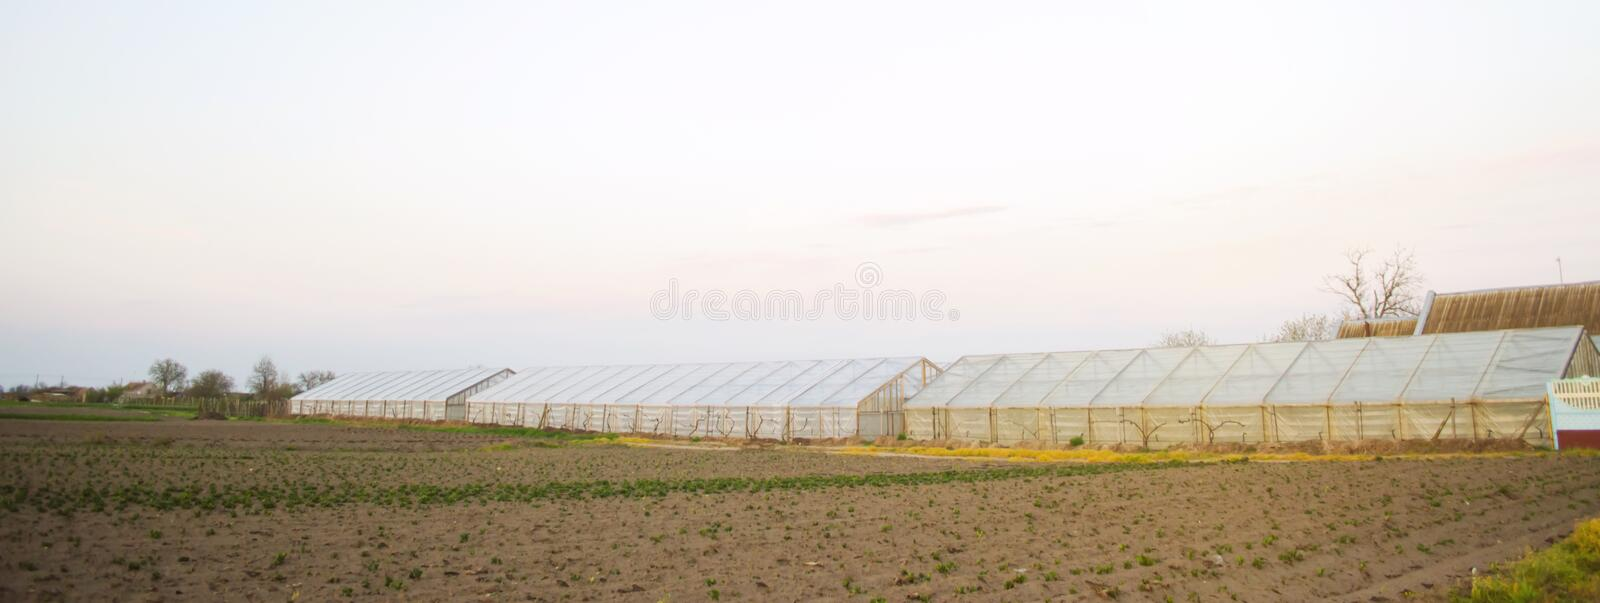 Greenhouses in the field for seedlings of crops. Growing organic vegetables. Lending to farmers. Farmlands agriculture agro-. Industrial complex. Winter crops stock image